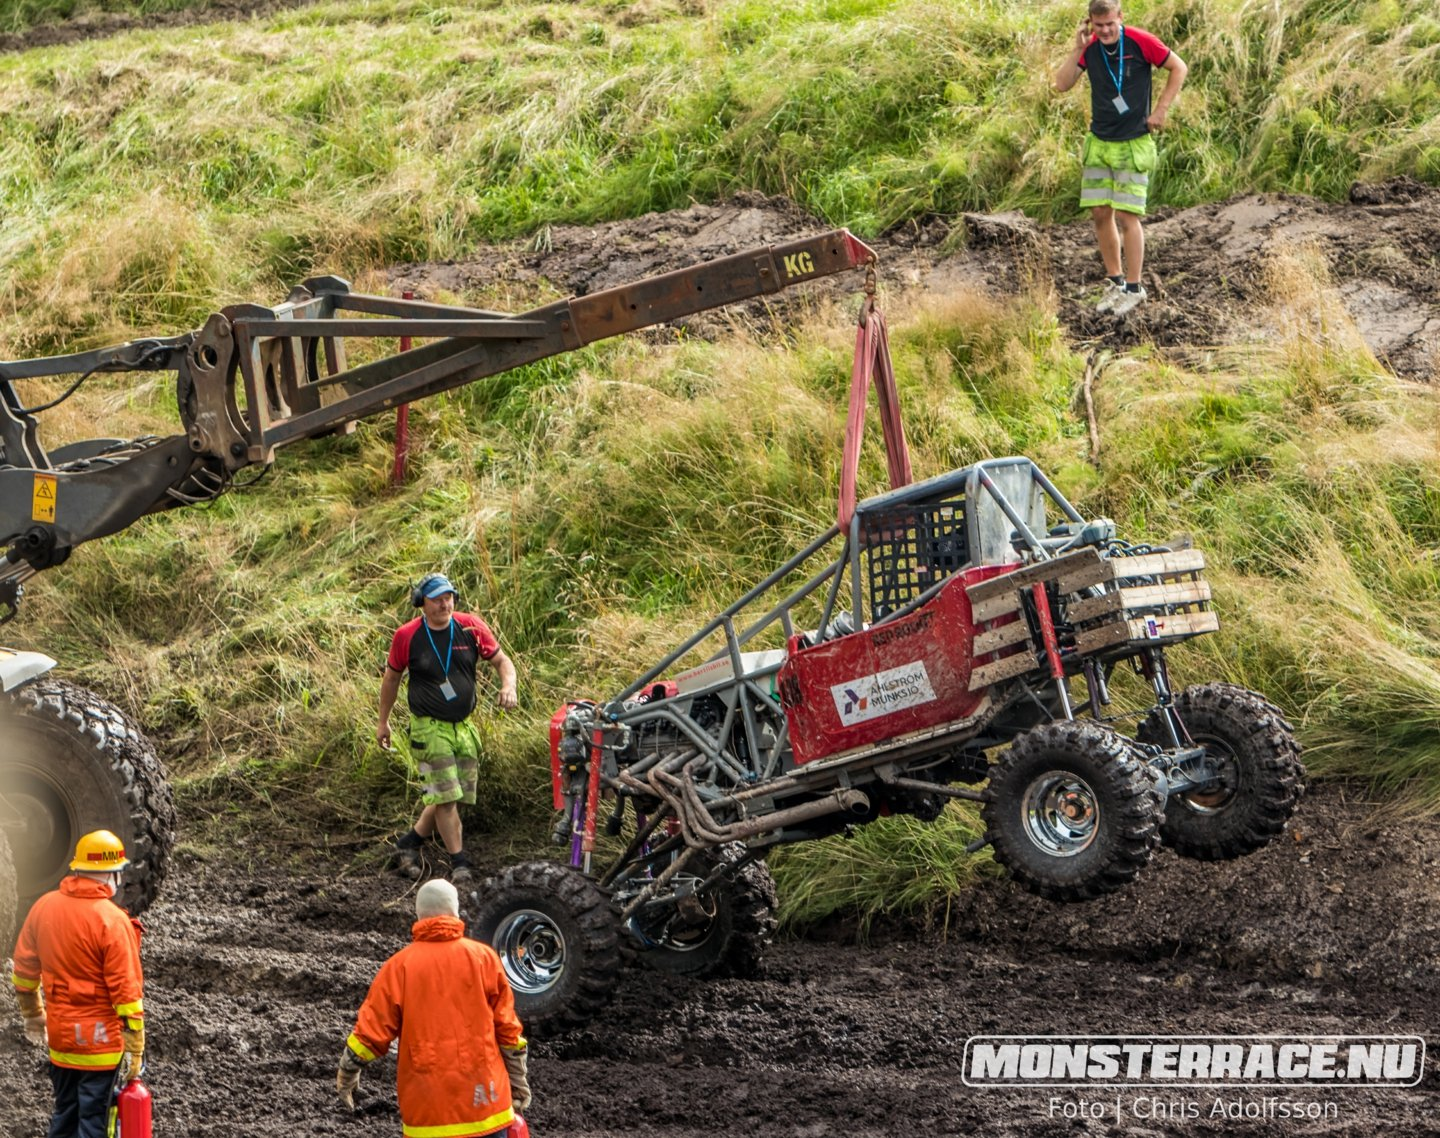 Monsterrace Ed dag 1 (165)